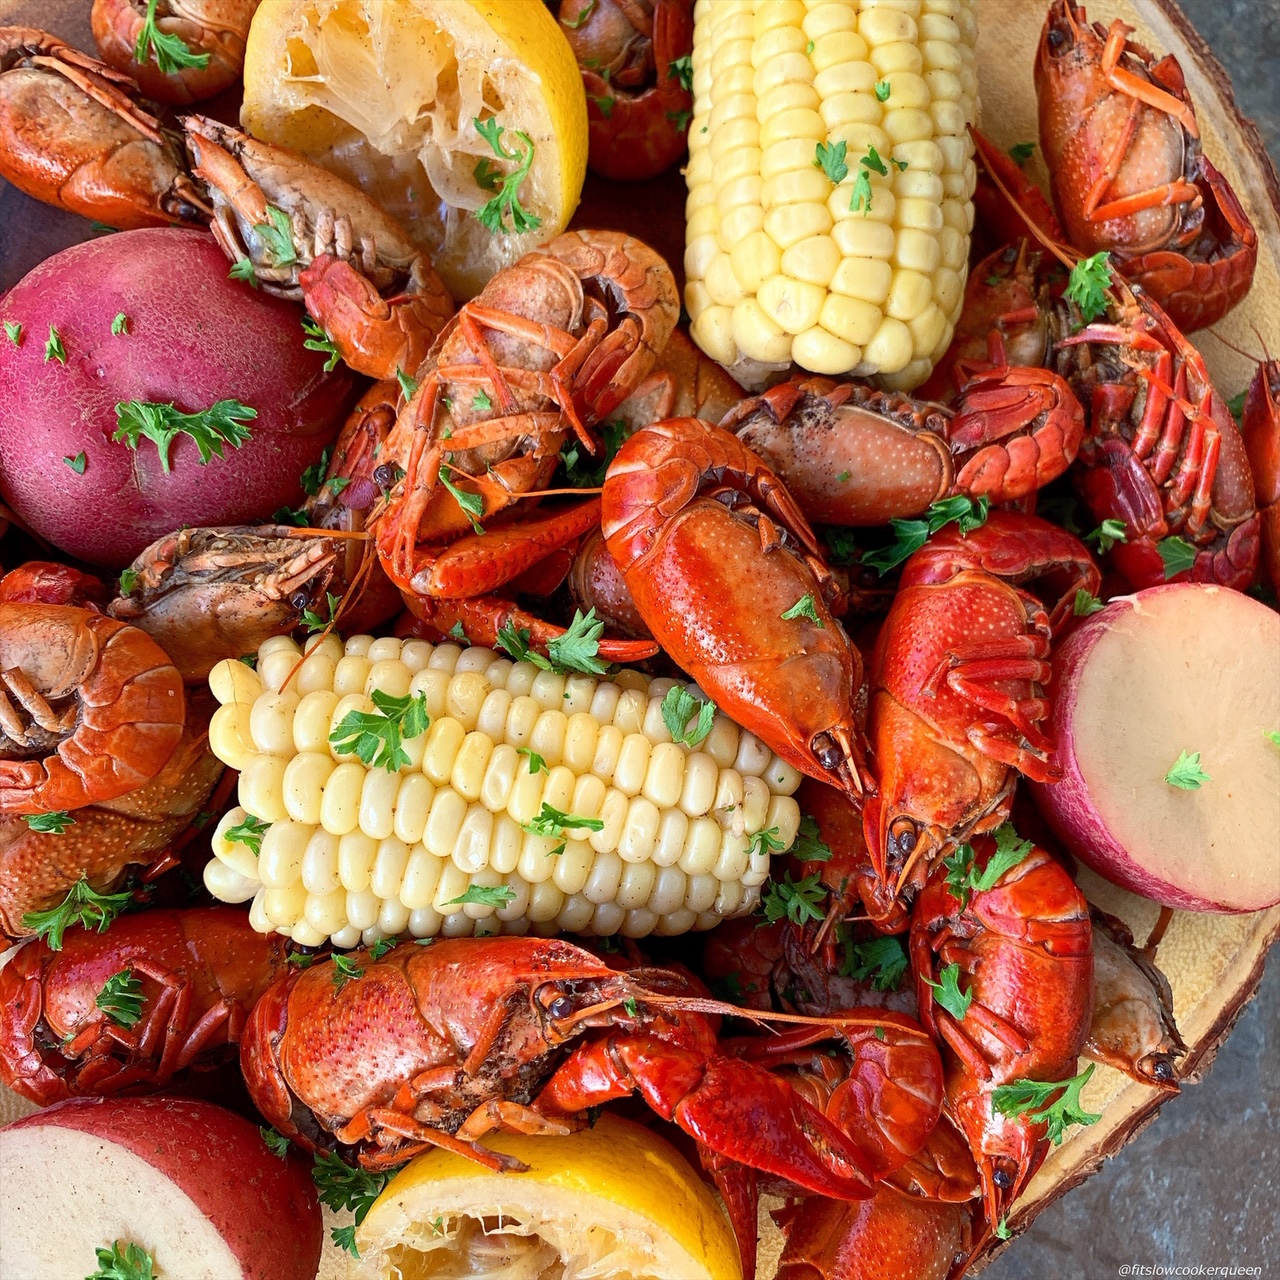 Channel your inner Cajun with this easy crawfish boil. Make this southern dish in your slow cooker for a simple yet flavorful Cajun meal.